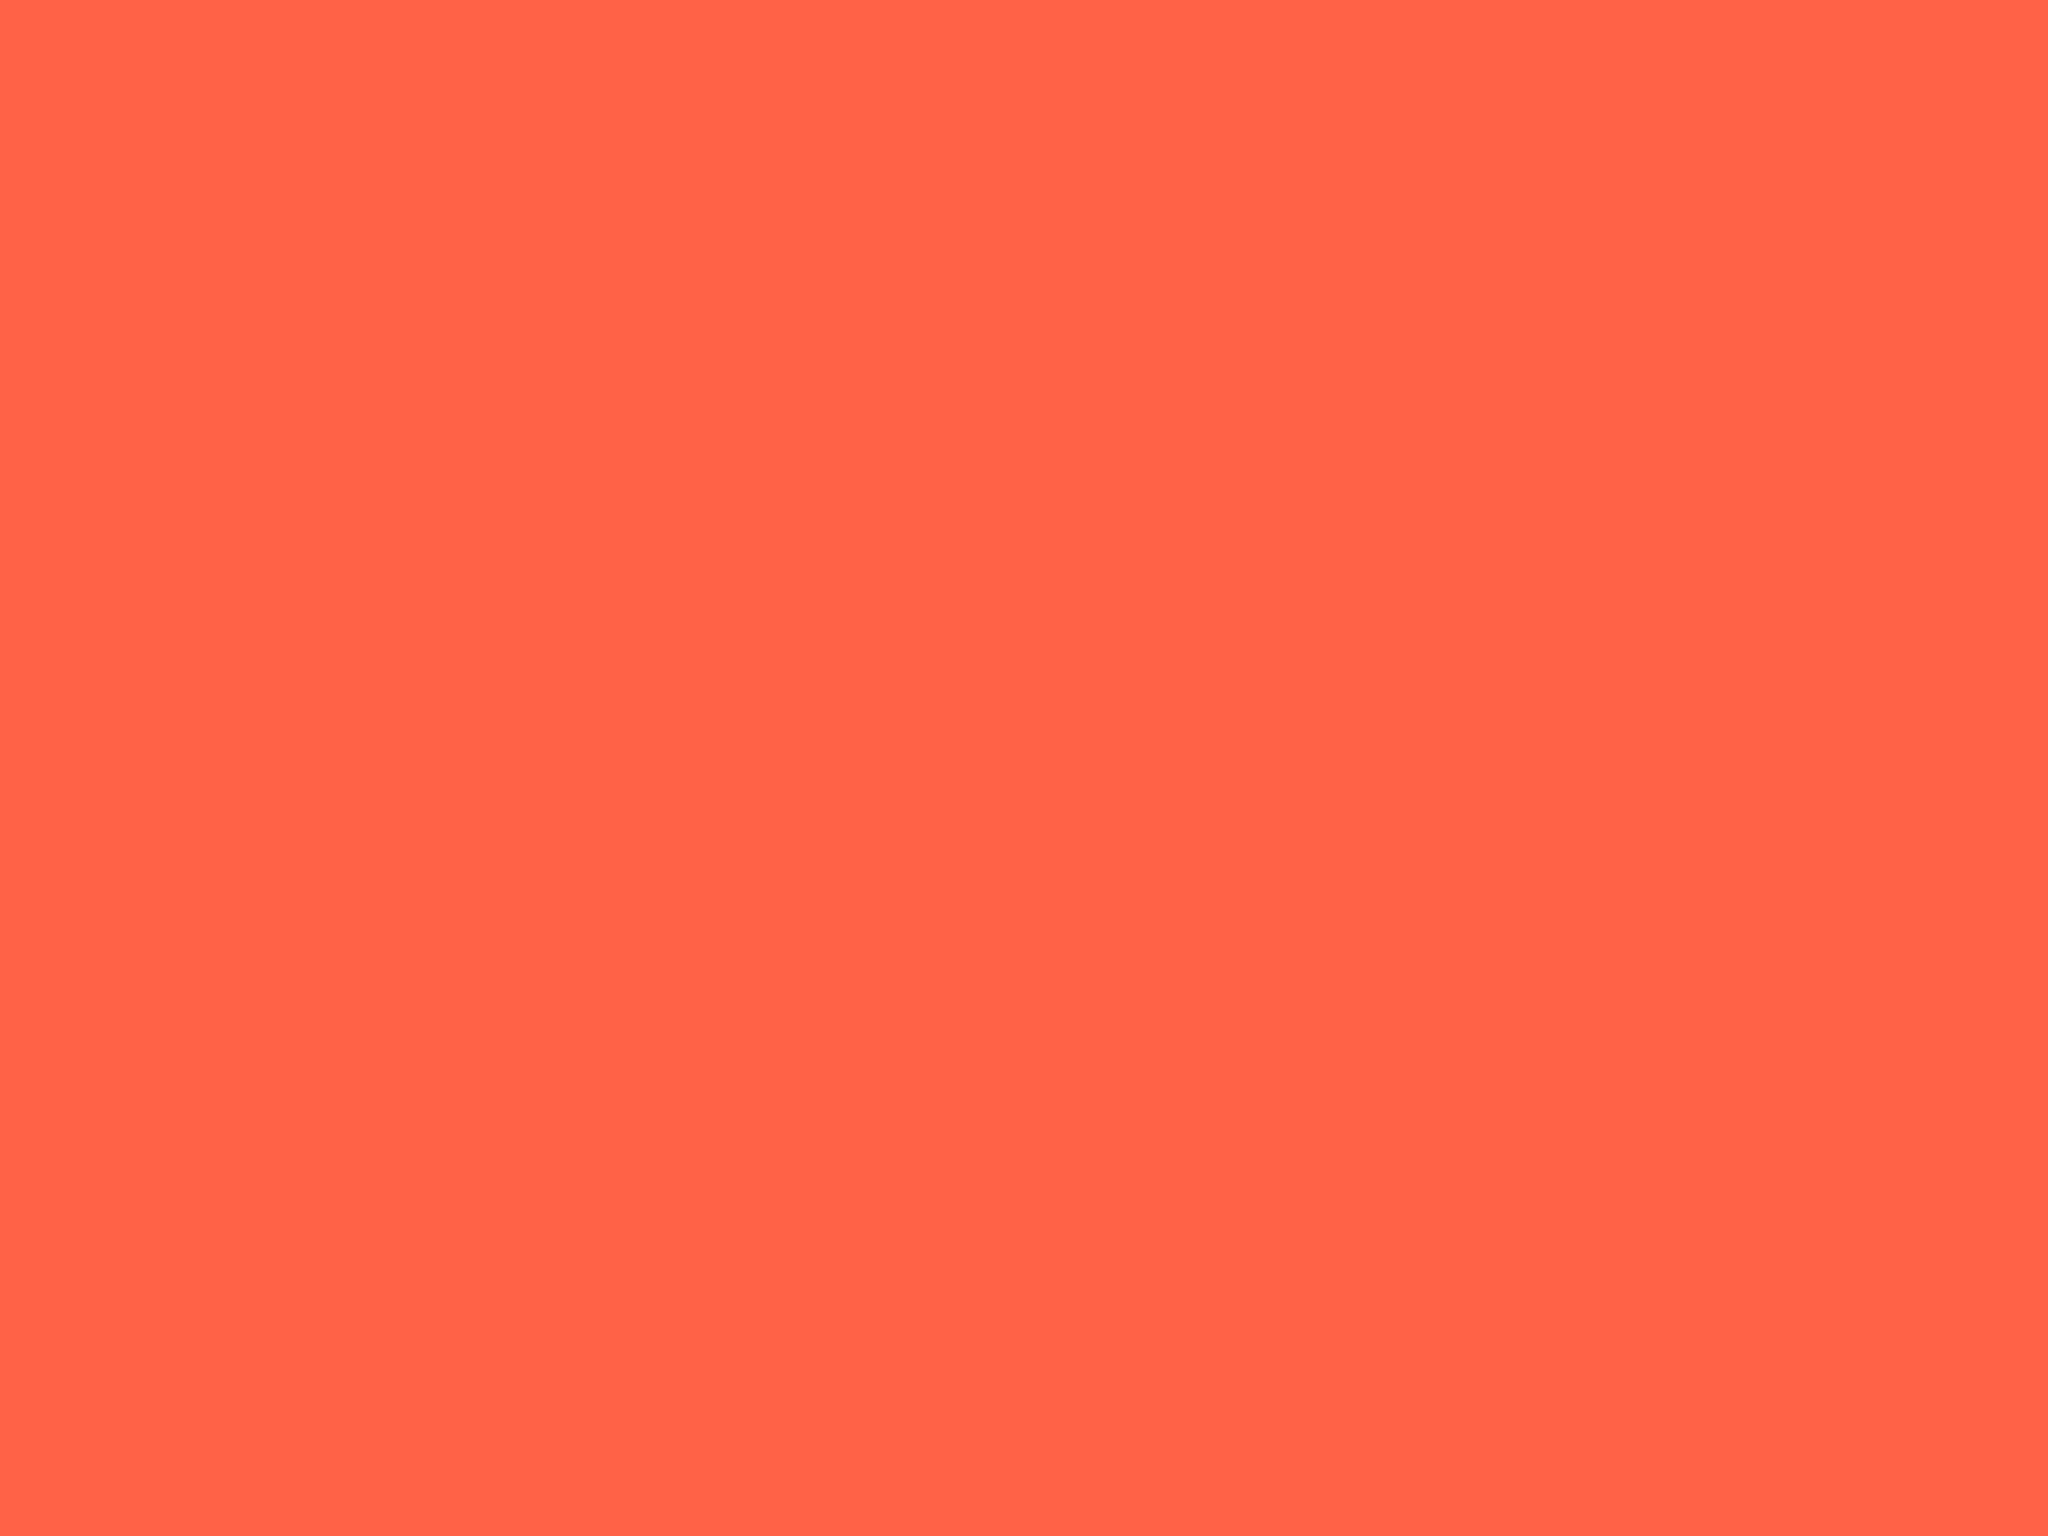 2048x1536 Tomato Solid Color Background